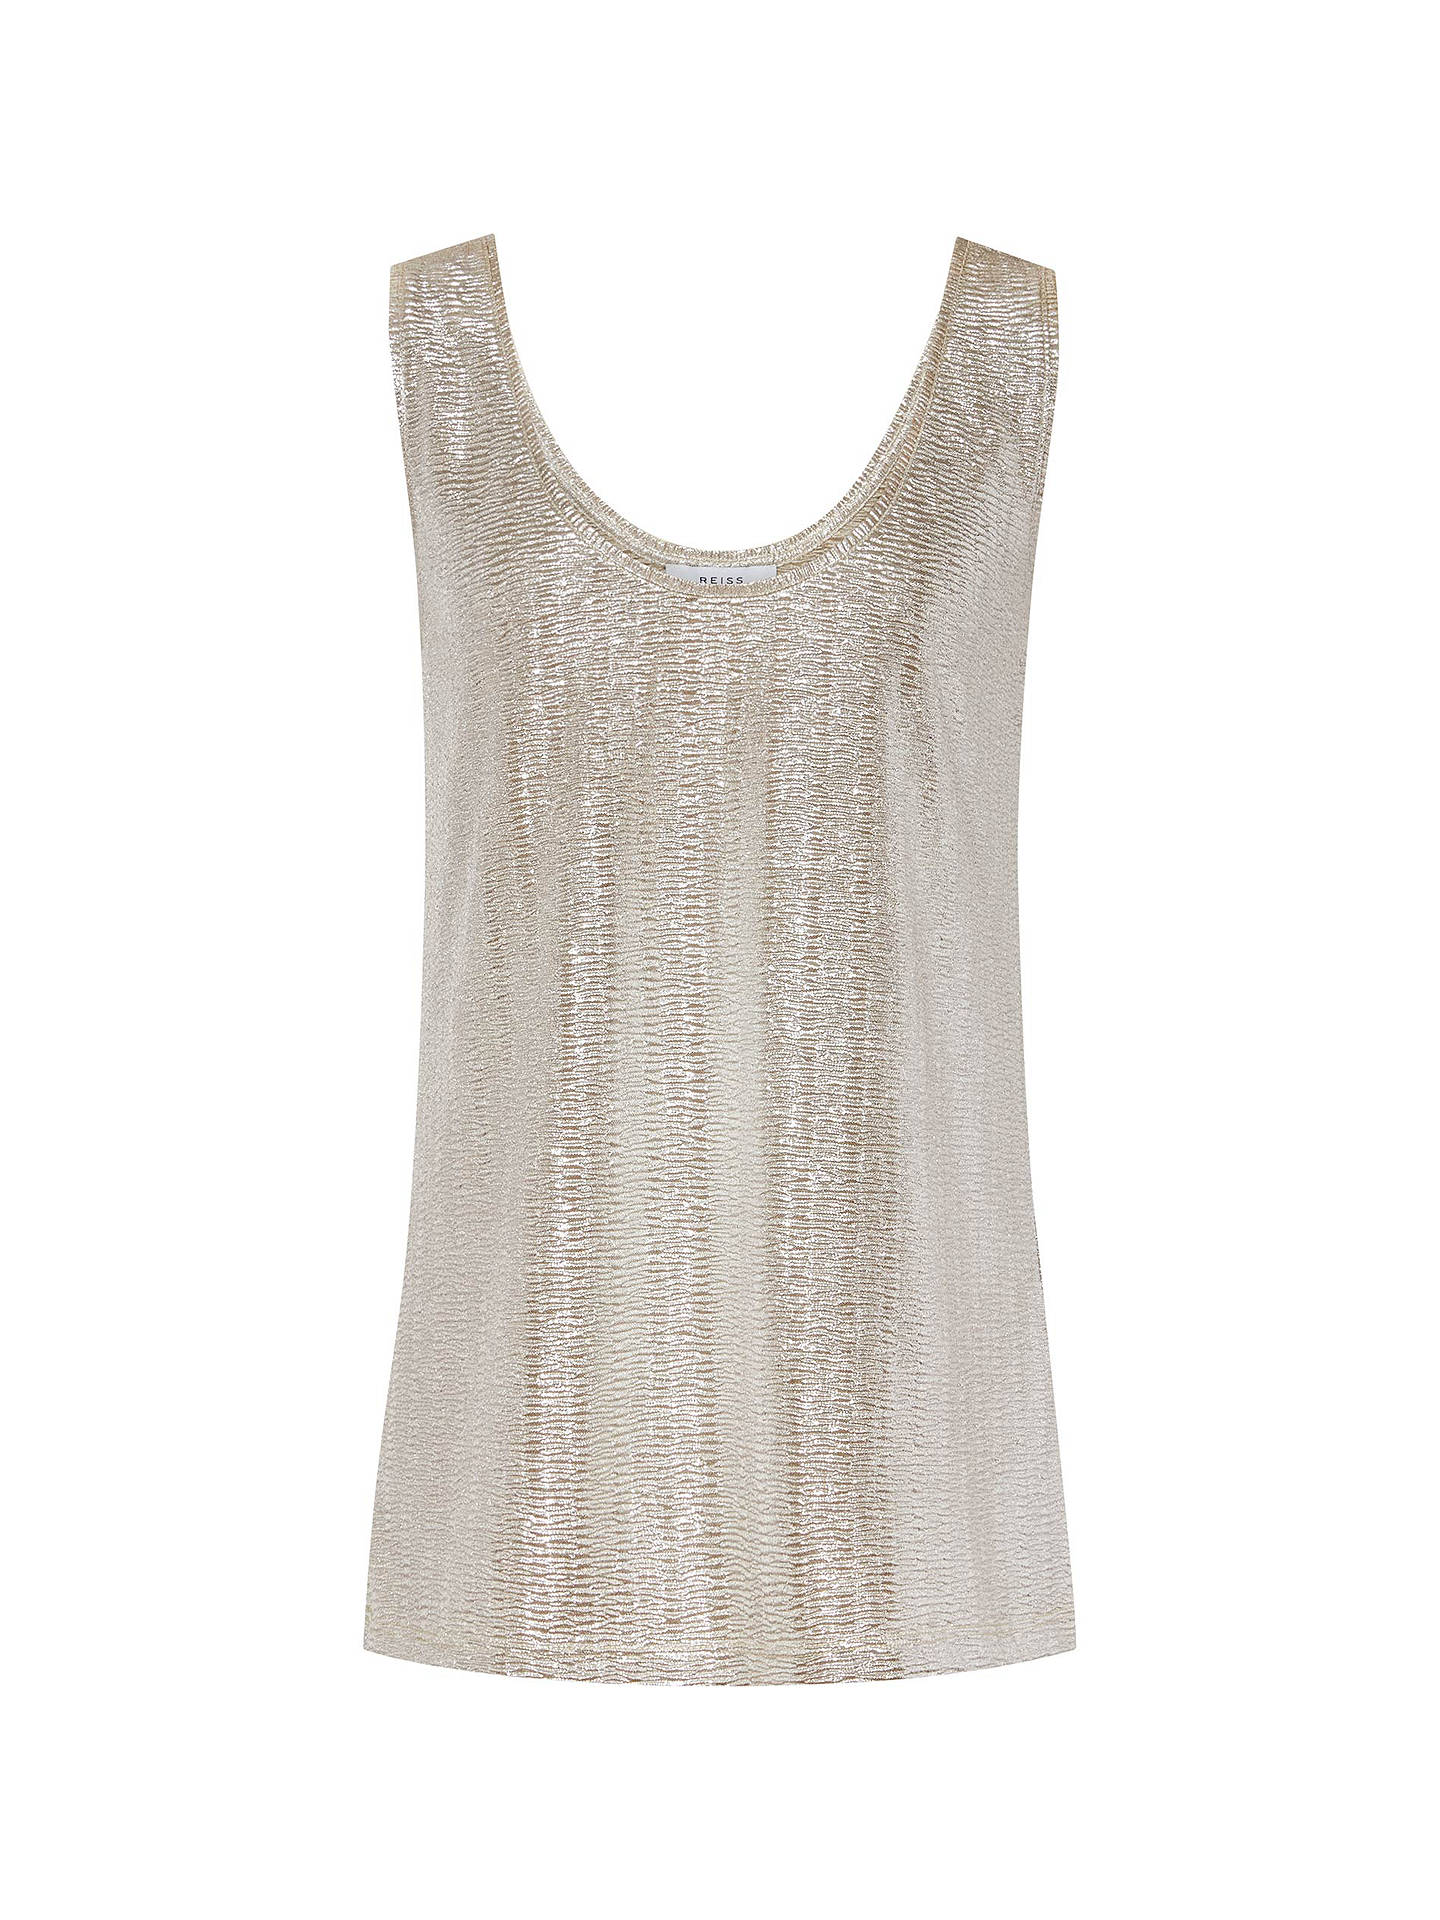 4903b5f3adf9b ... Buy Reiss Gemma Metallic Front Vest Top